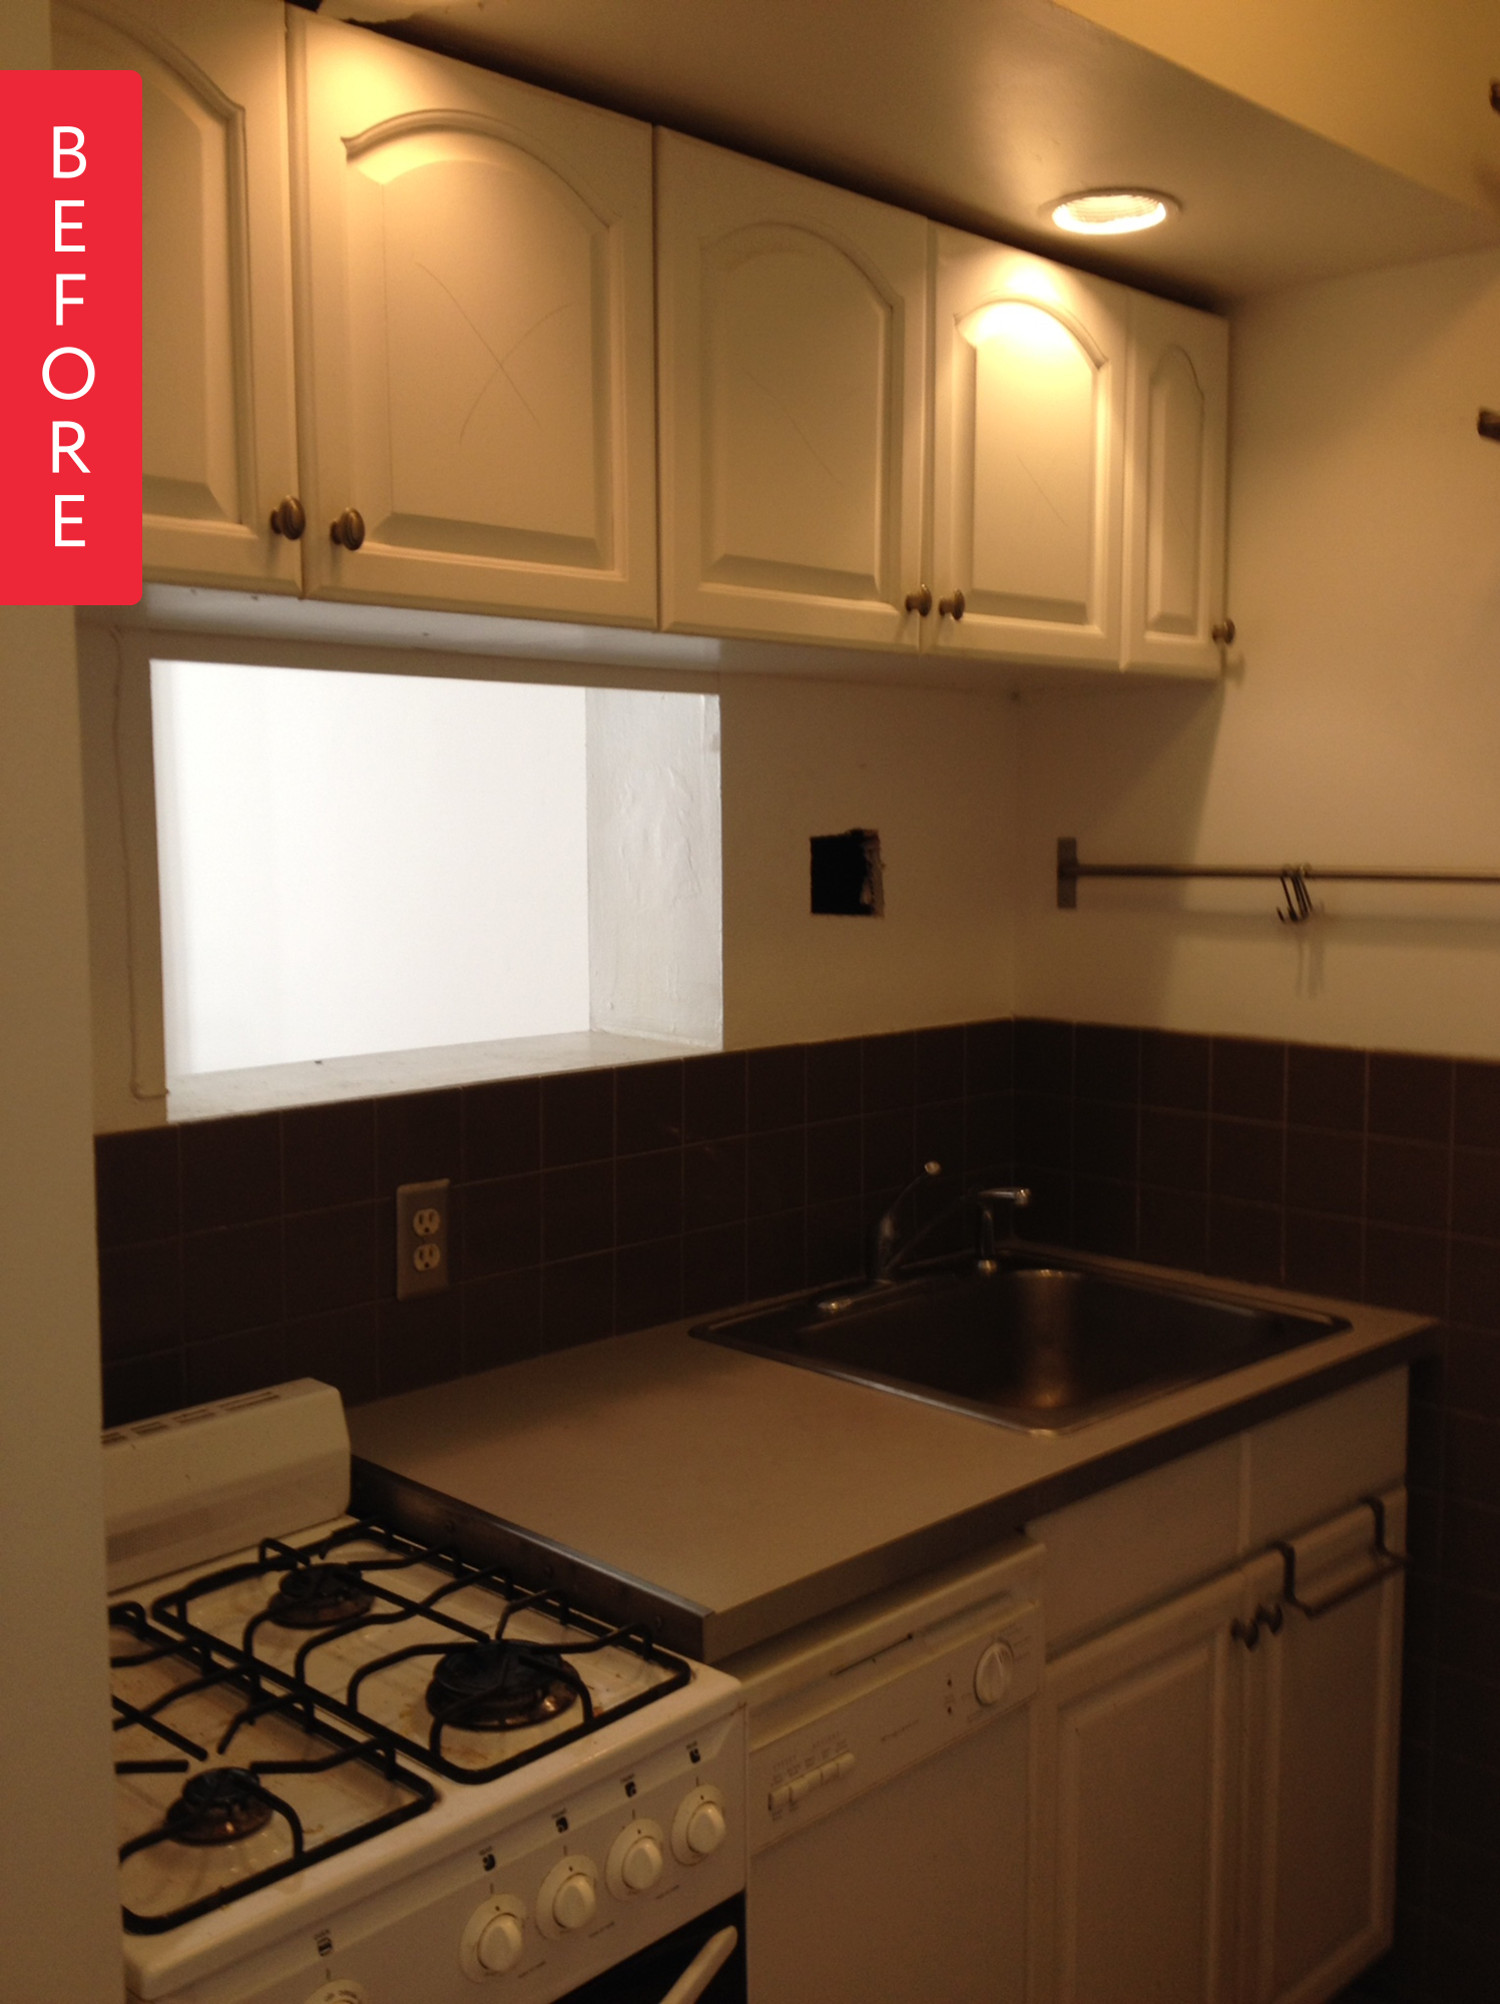 Kitchen Remodeling Brooklyn Ny  James' Brooklyn Kitchen is Now pletely Different